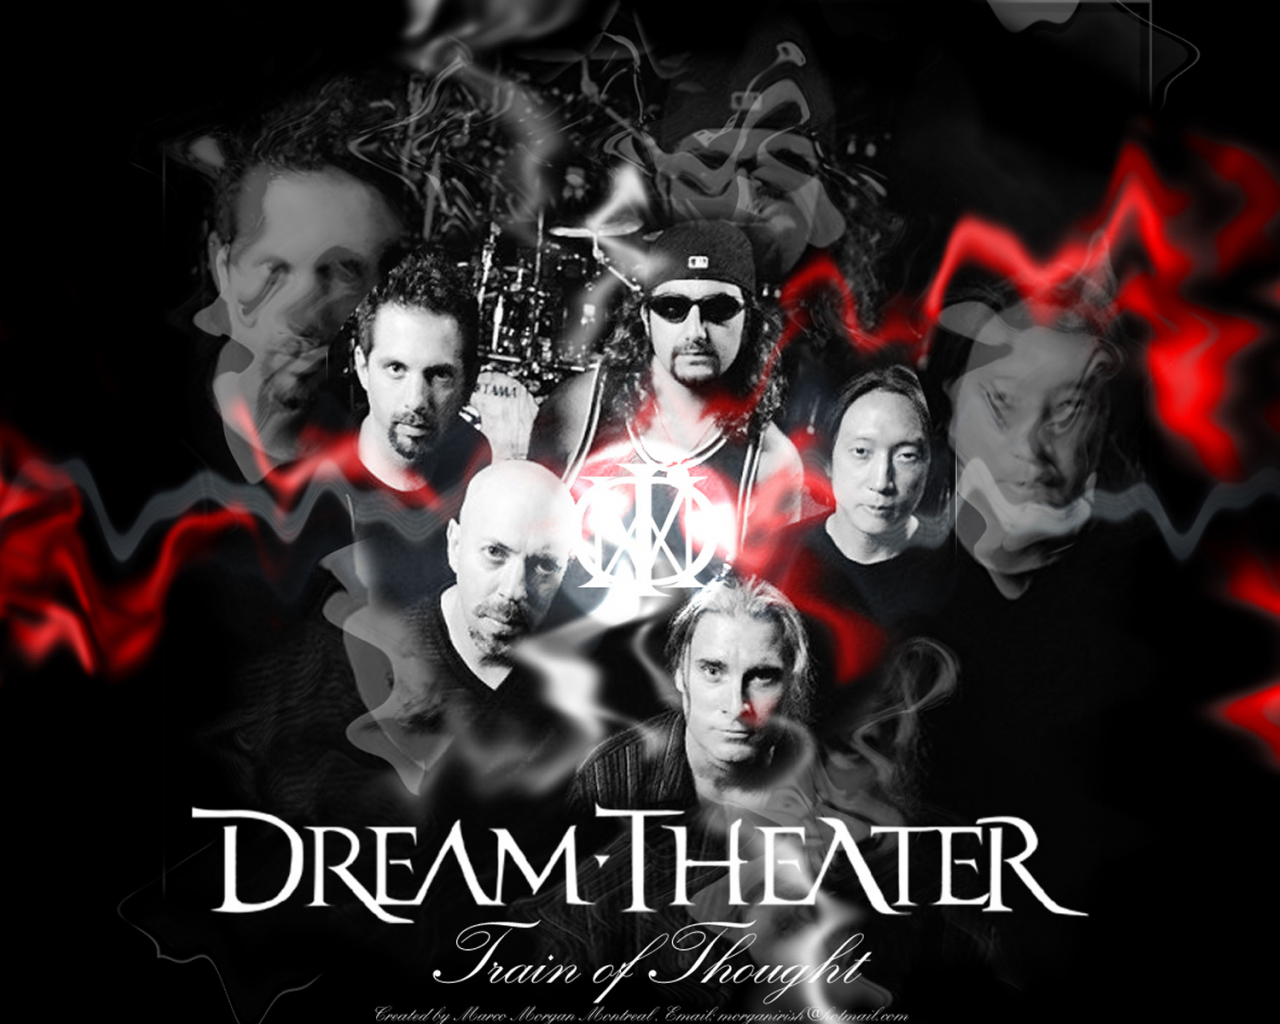 Free Download Dream Theater Wallpaper 1600x1200 Dream Theater Music Bands 1600x1200 For Your Desktop Mobile Tablet Explore 41 Musical Theatre Wallpaper Theater Wallpaper Backgrounds Home Theater Wallpaper For Desktop